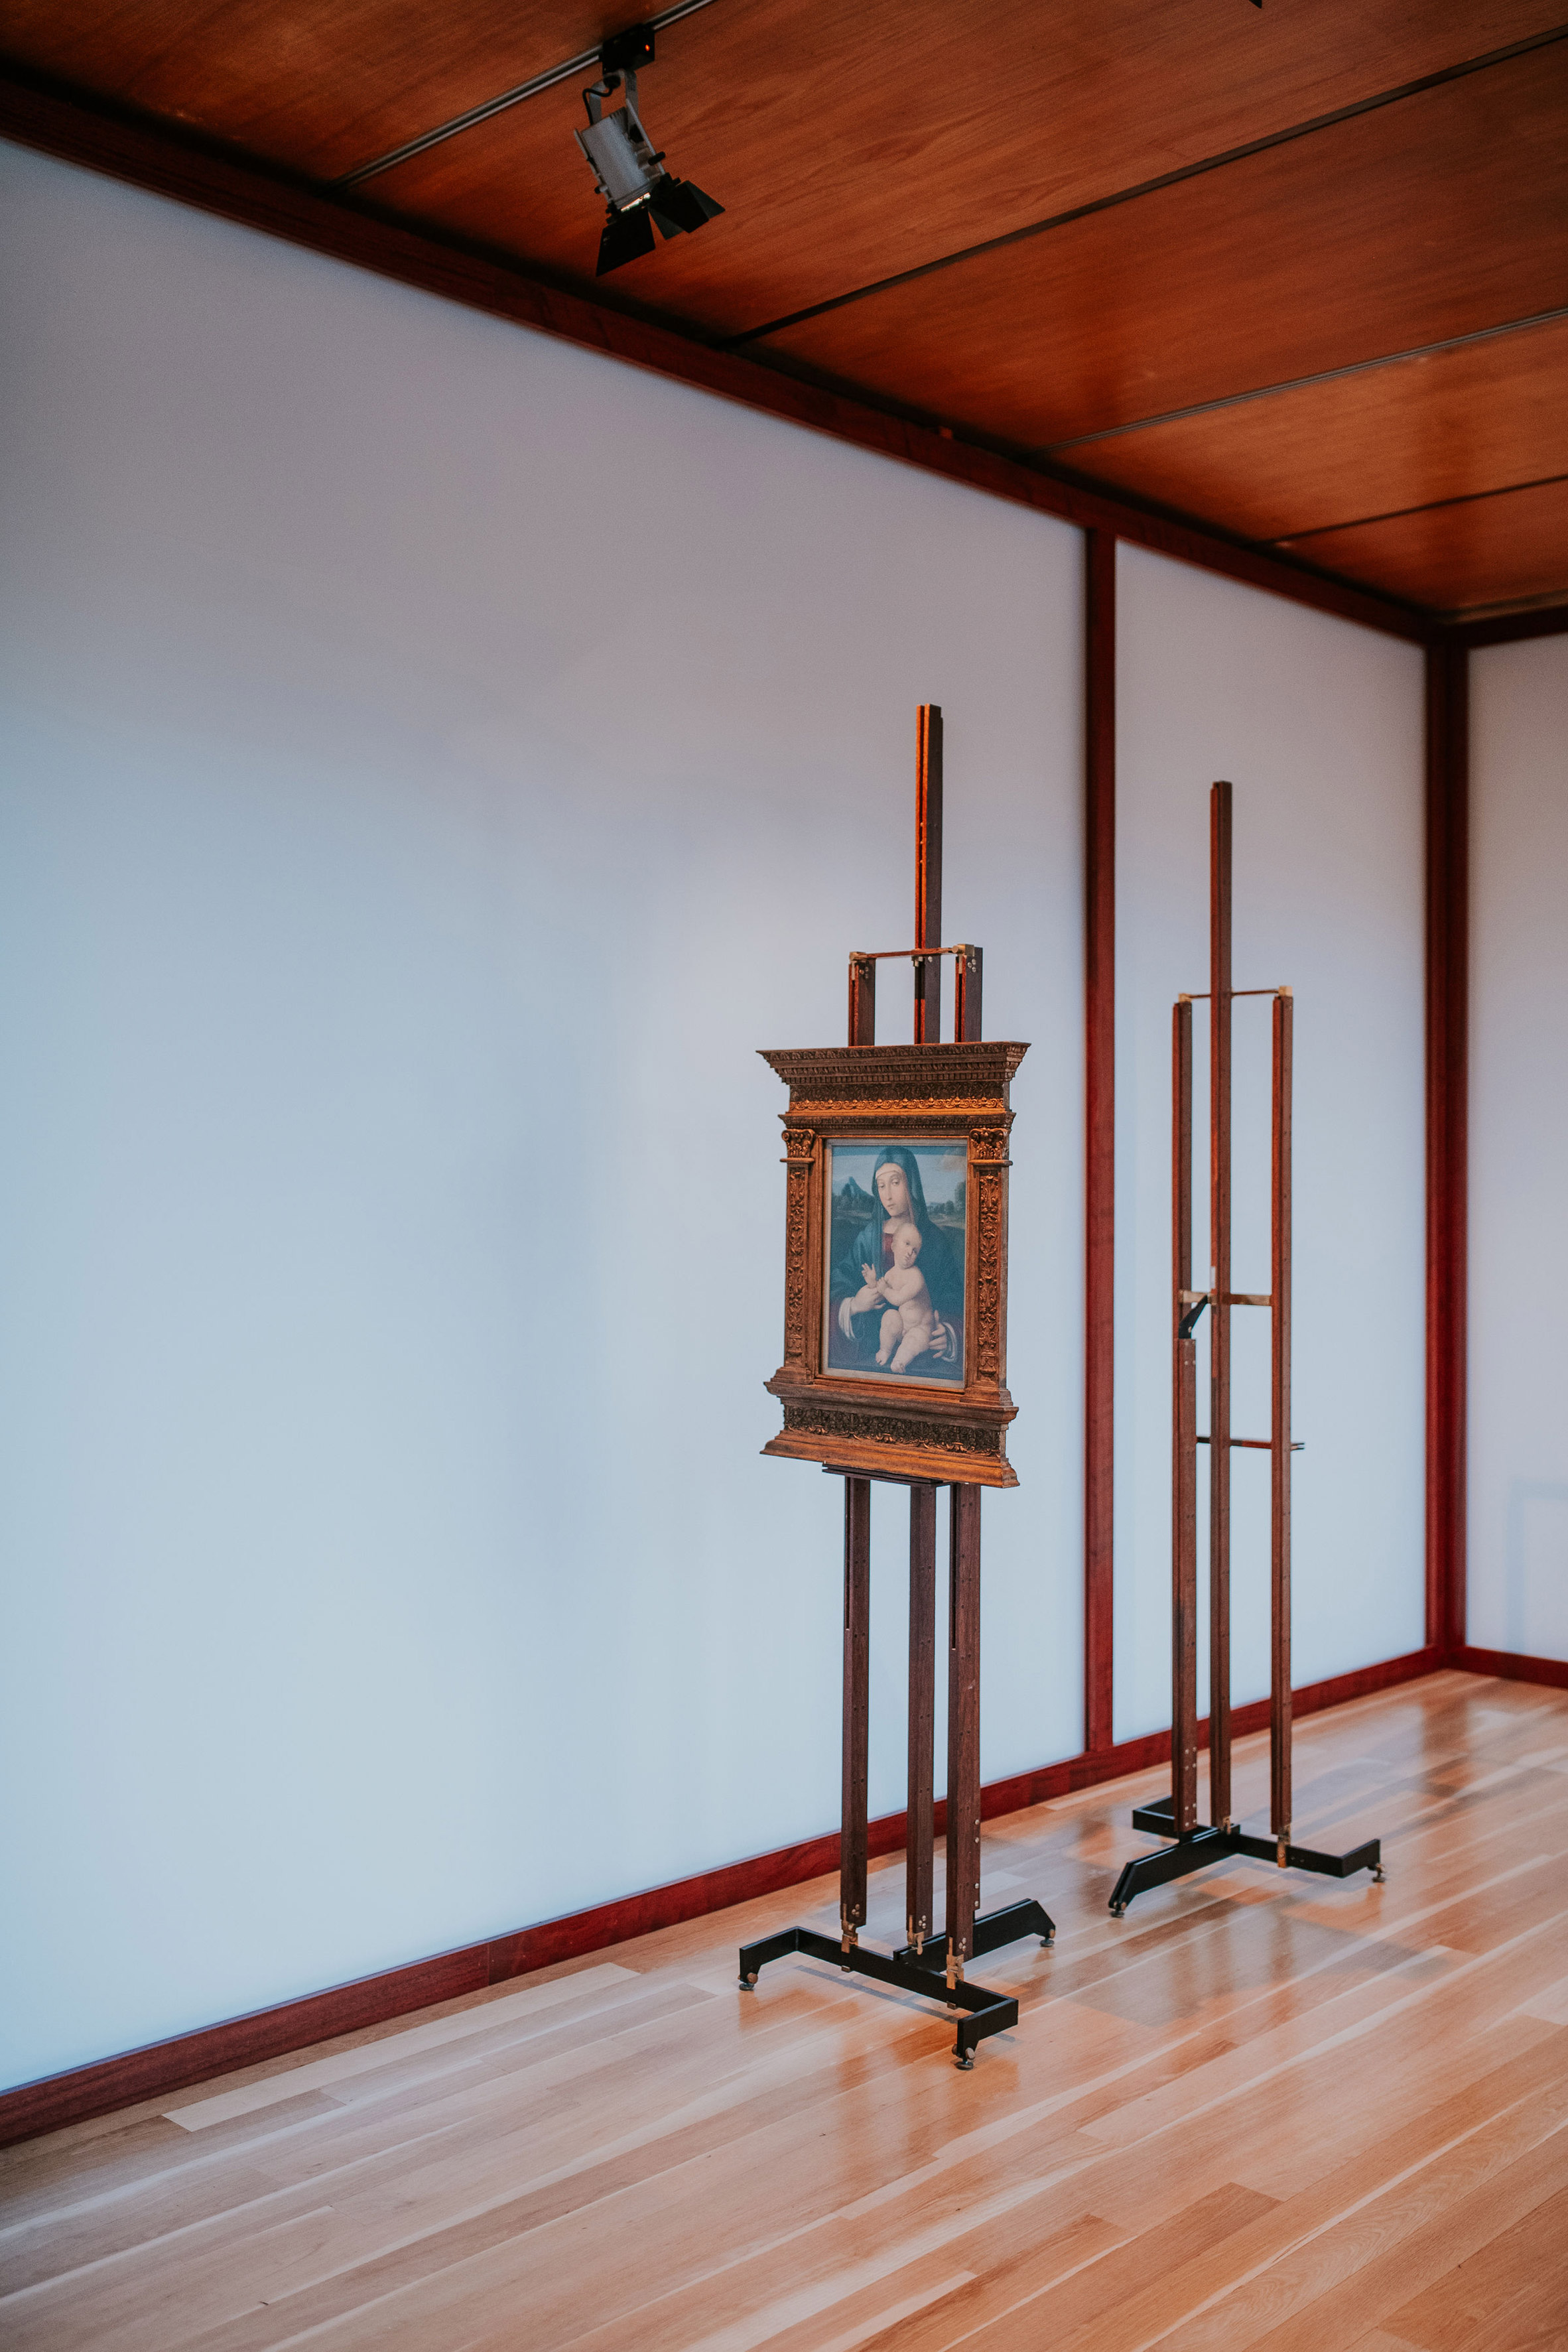 Carlo Scarpa's exhibition design at Art on Display at the Gulbenkian Museum